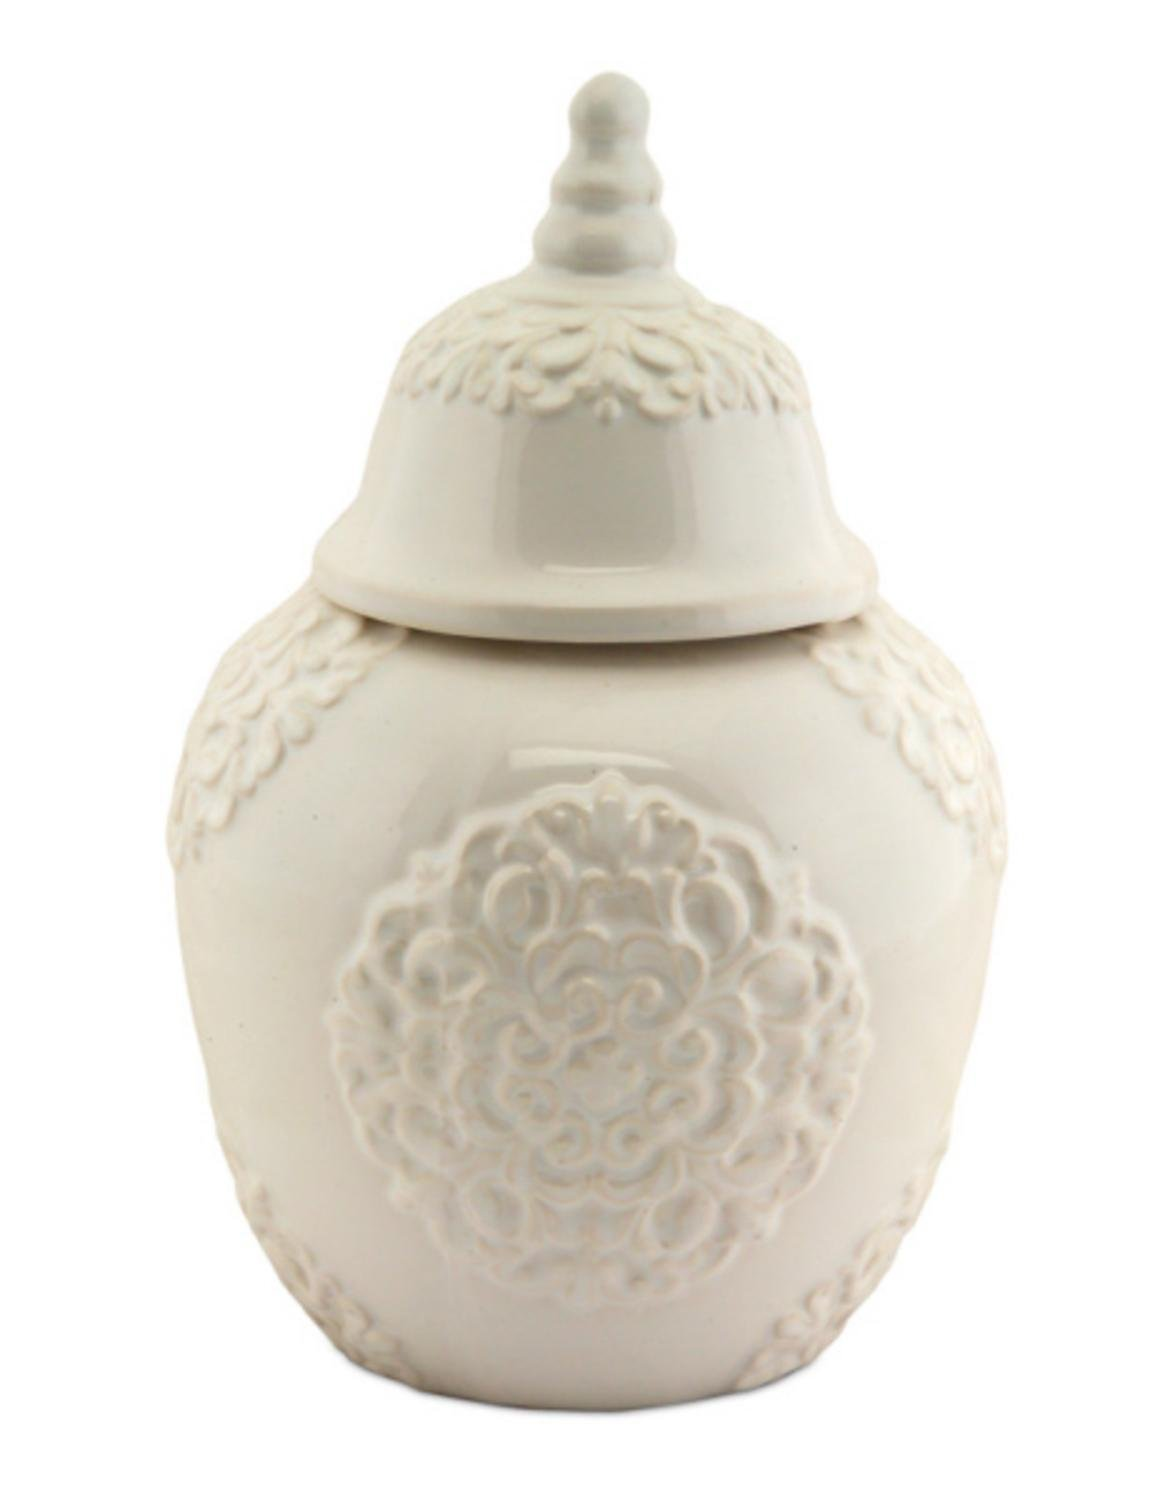 Pack of 4 Glossy Antique White Decorative Medallion Table Top Ceramic Containers with Lids 12'' by Melrose